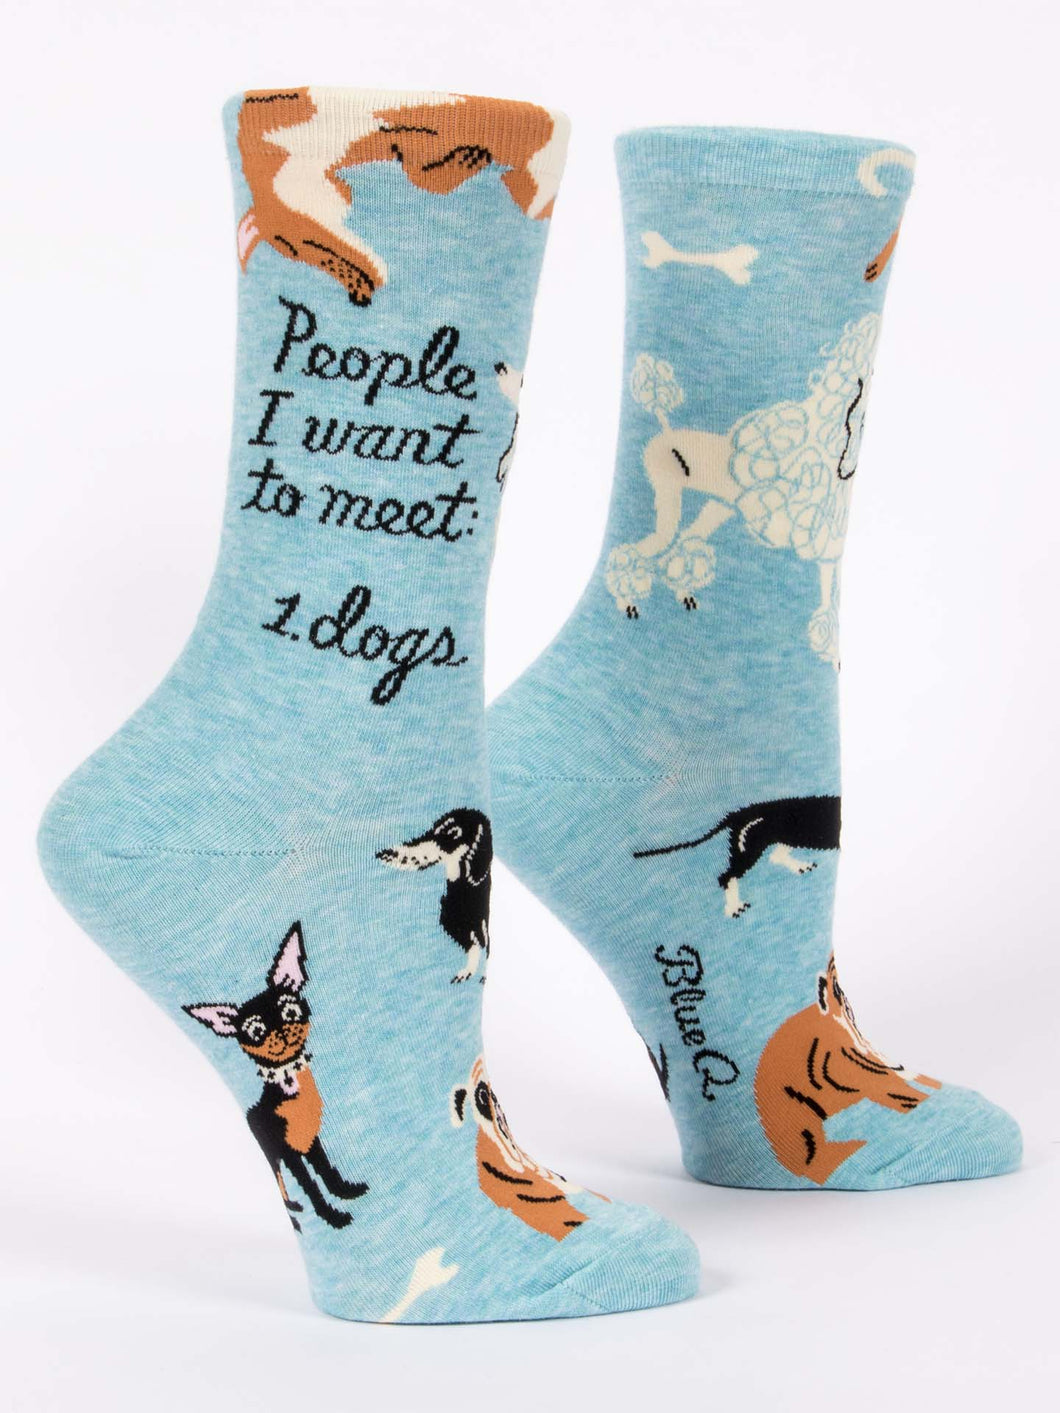 blue q Crew Socks -People To Meet: Dogs